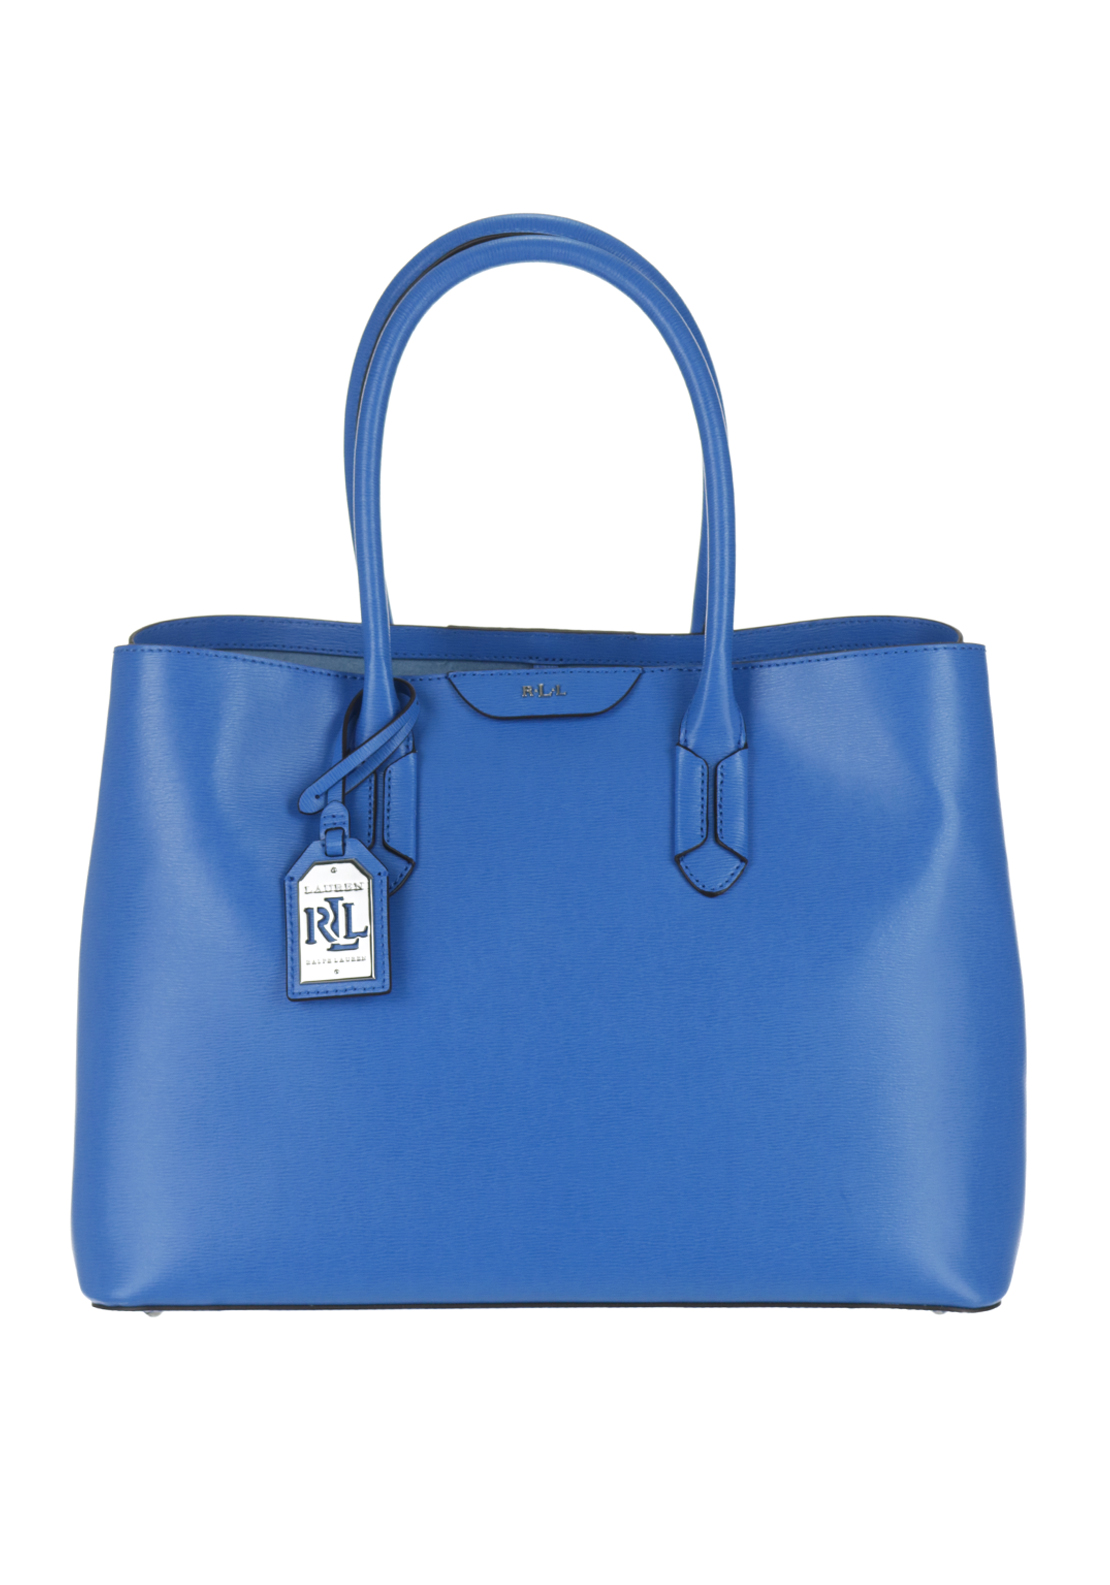 Ralph Lauren City Tote Shoulder Bag, Cyan Blue